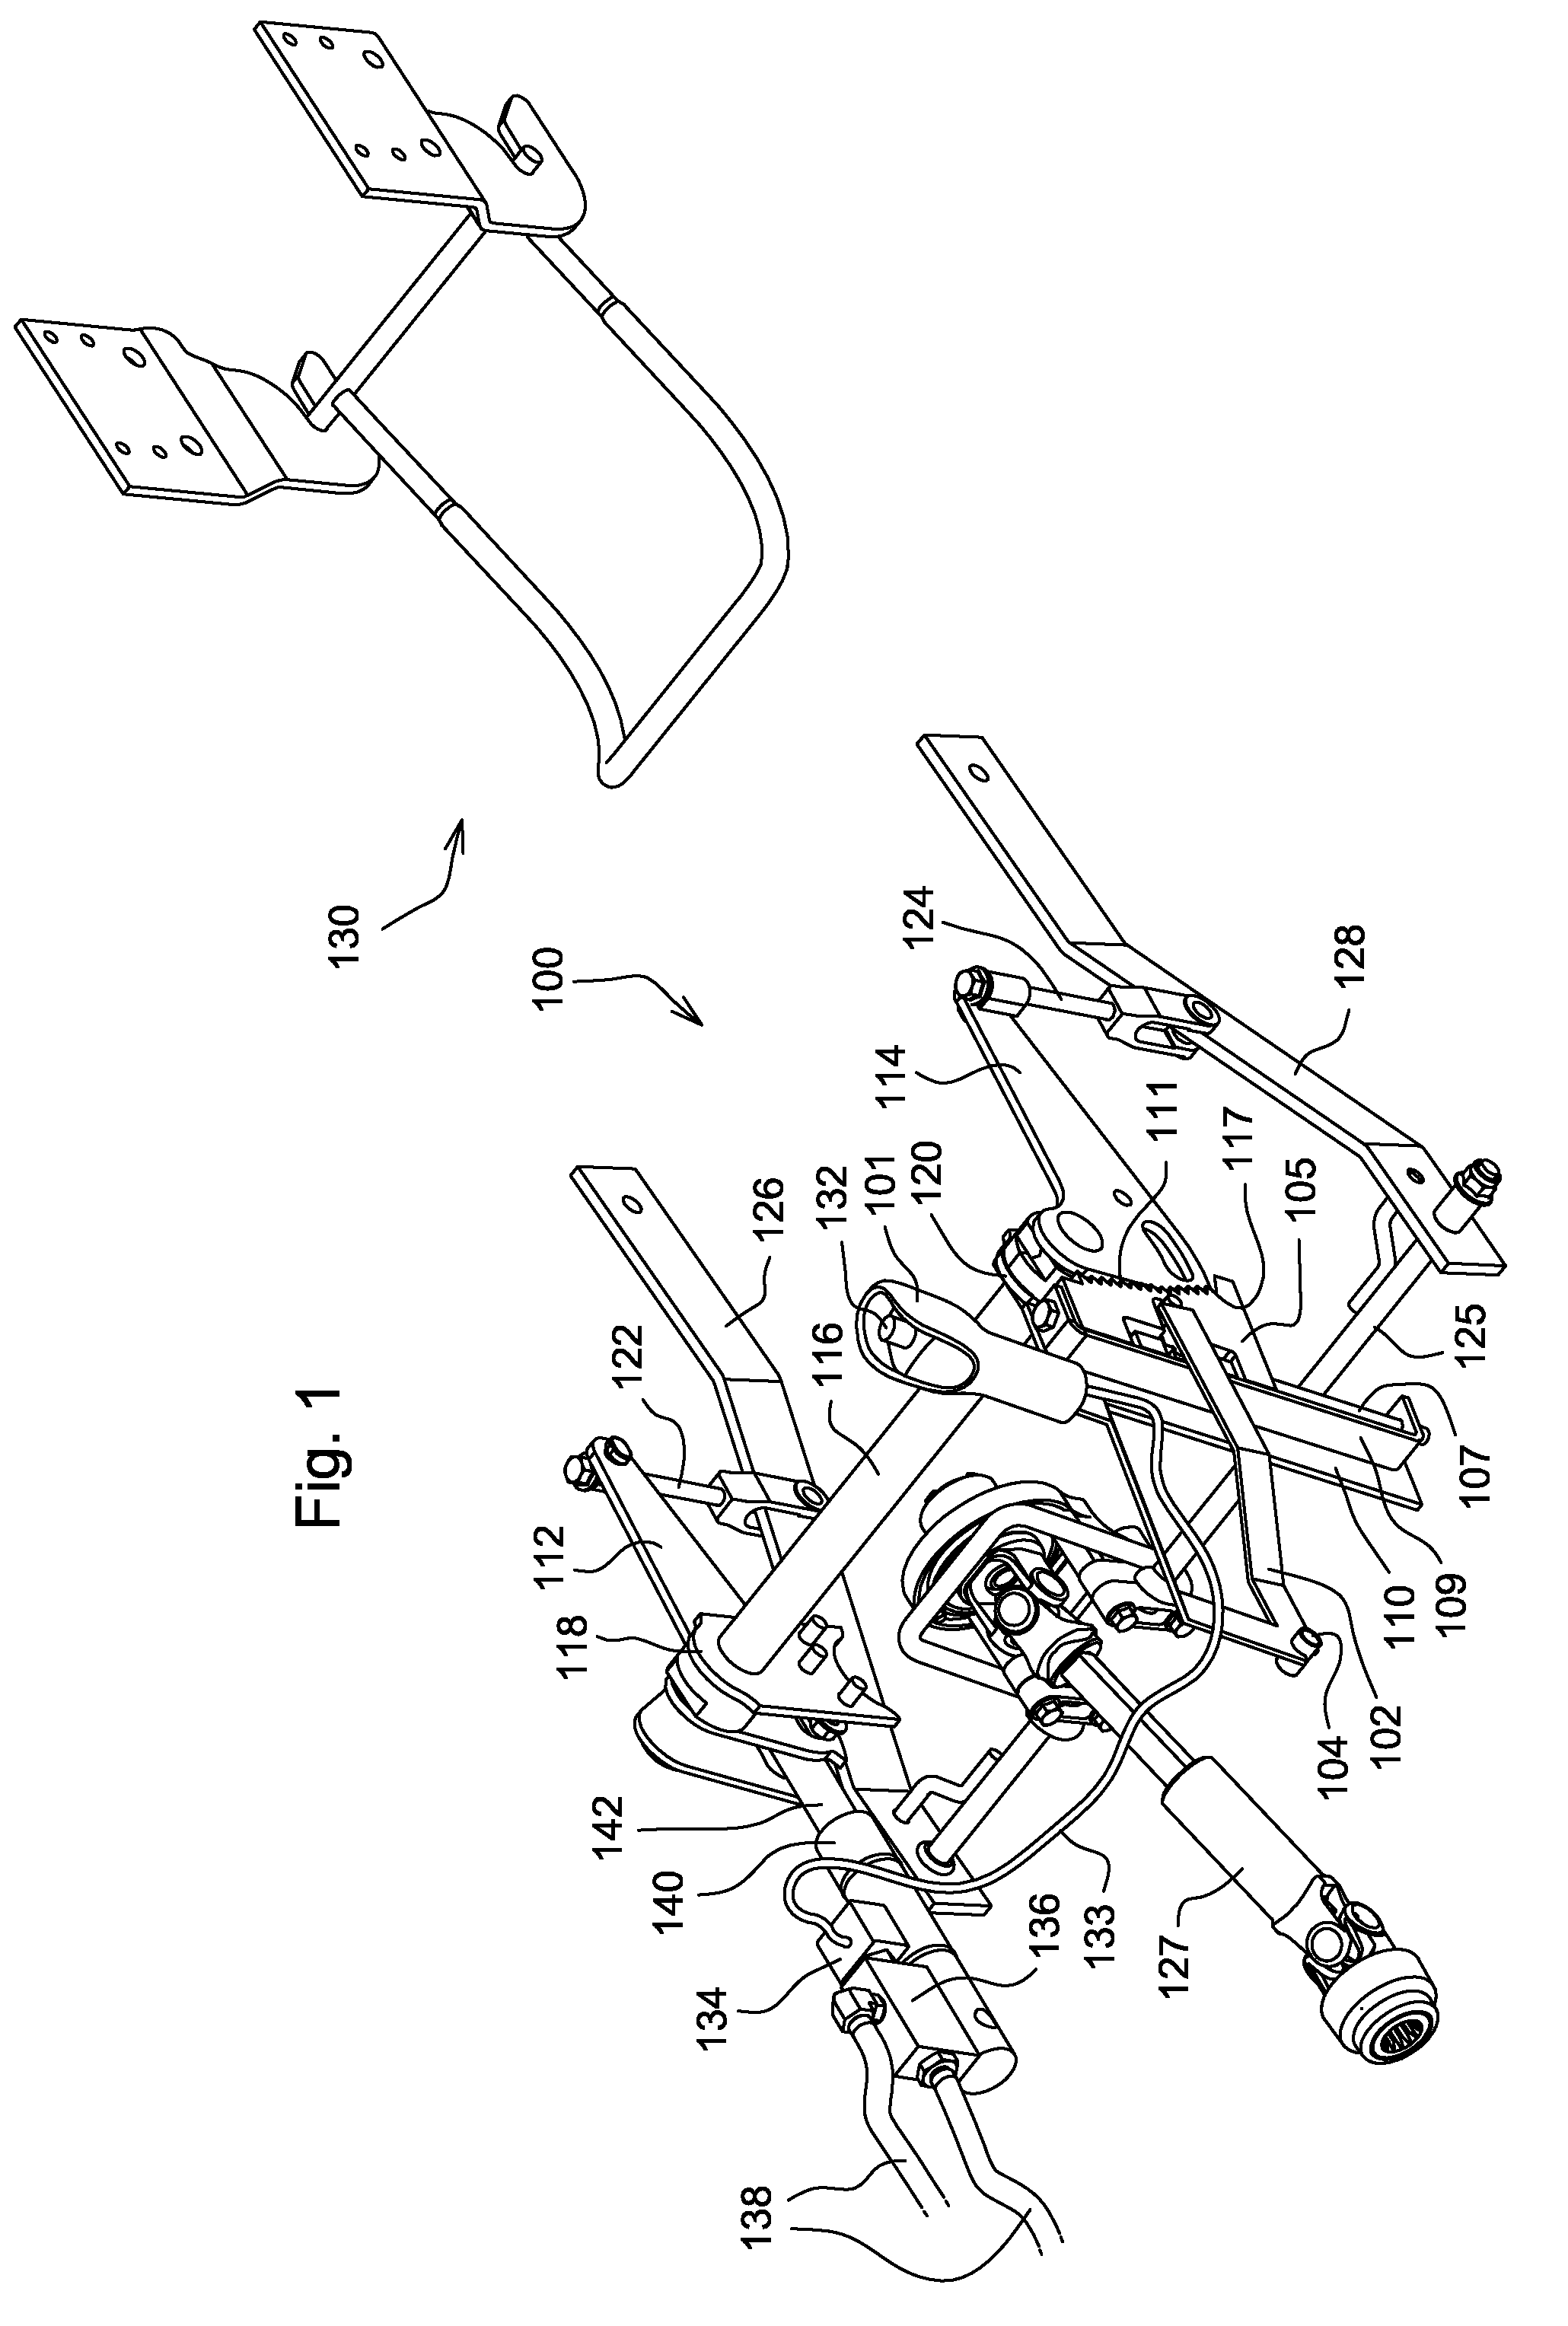 Lever Arm Depth : Patent us single lever mower deck height of cut